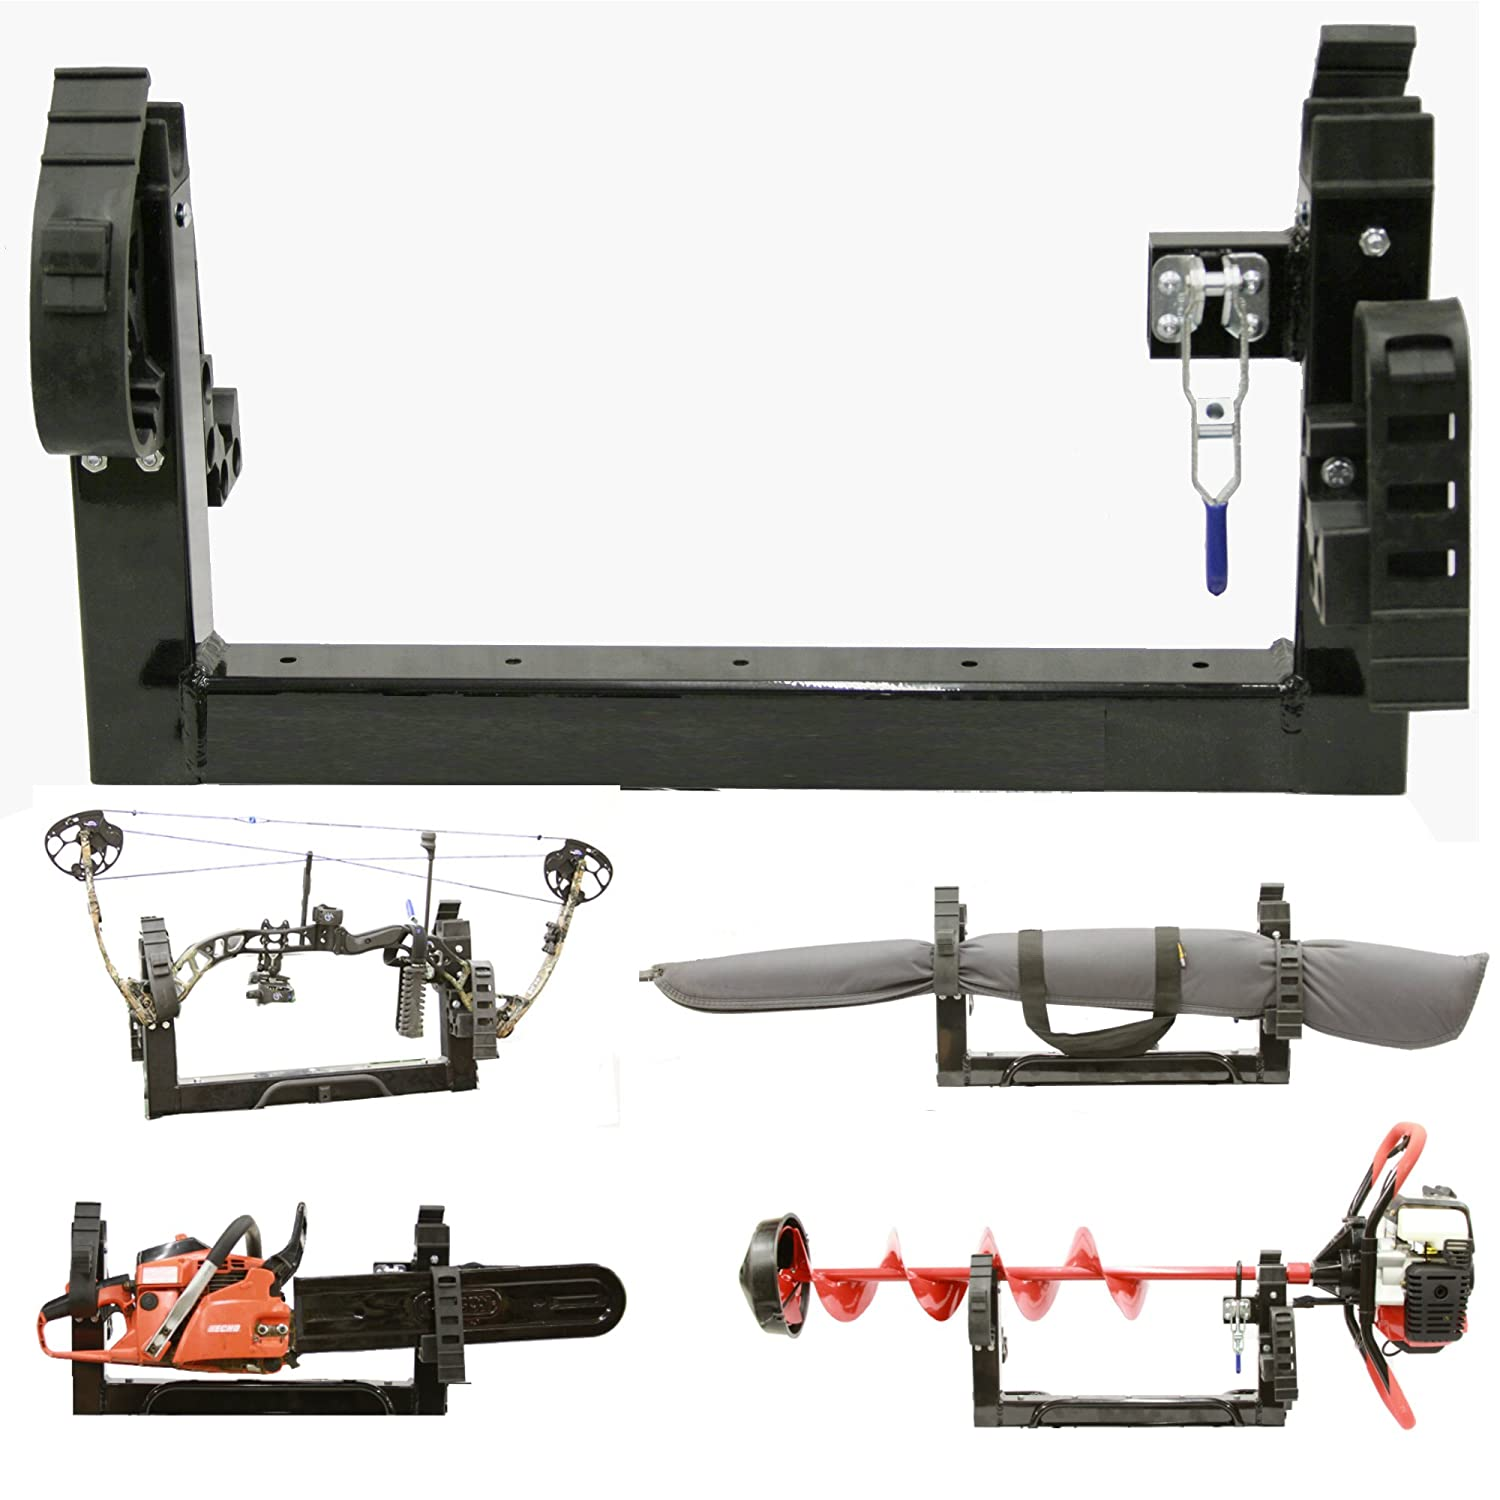 rear tubular they index ts cargo and gear fit universal racks product front guide piece atv on basket composite set rack most